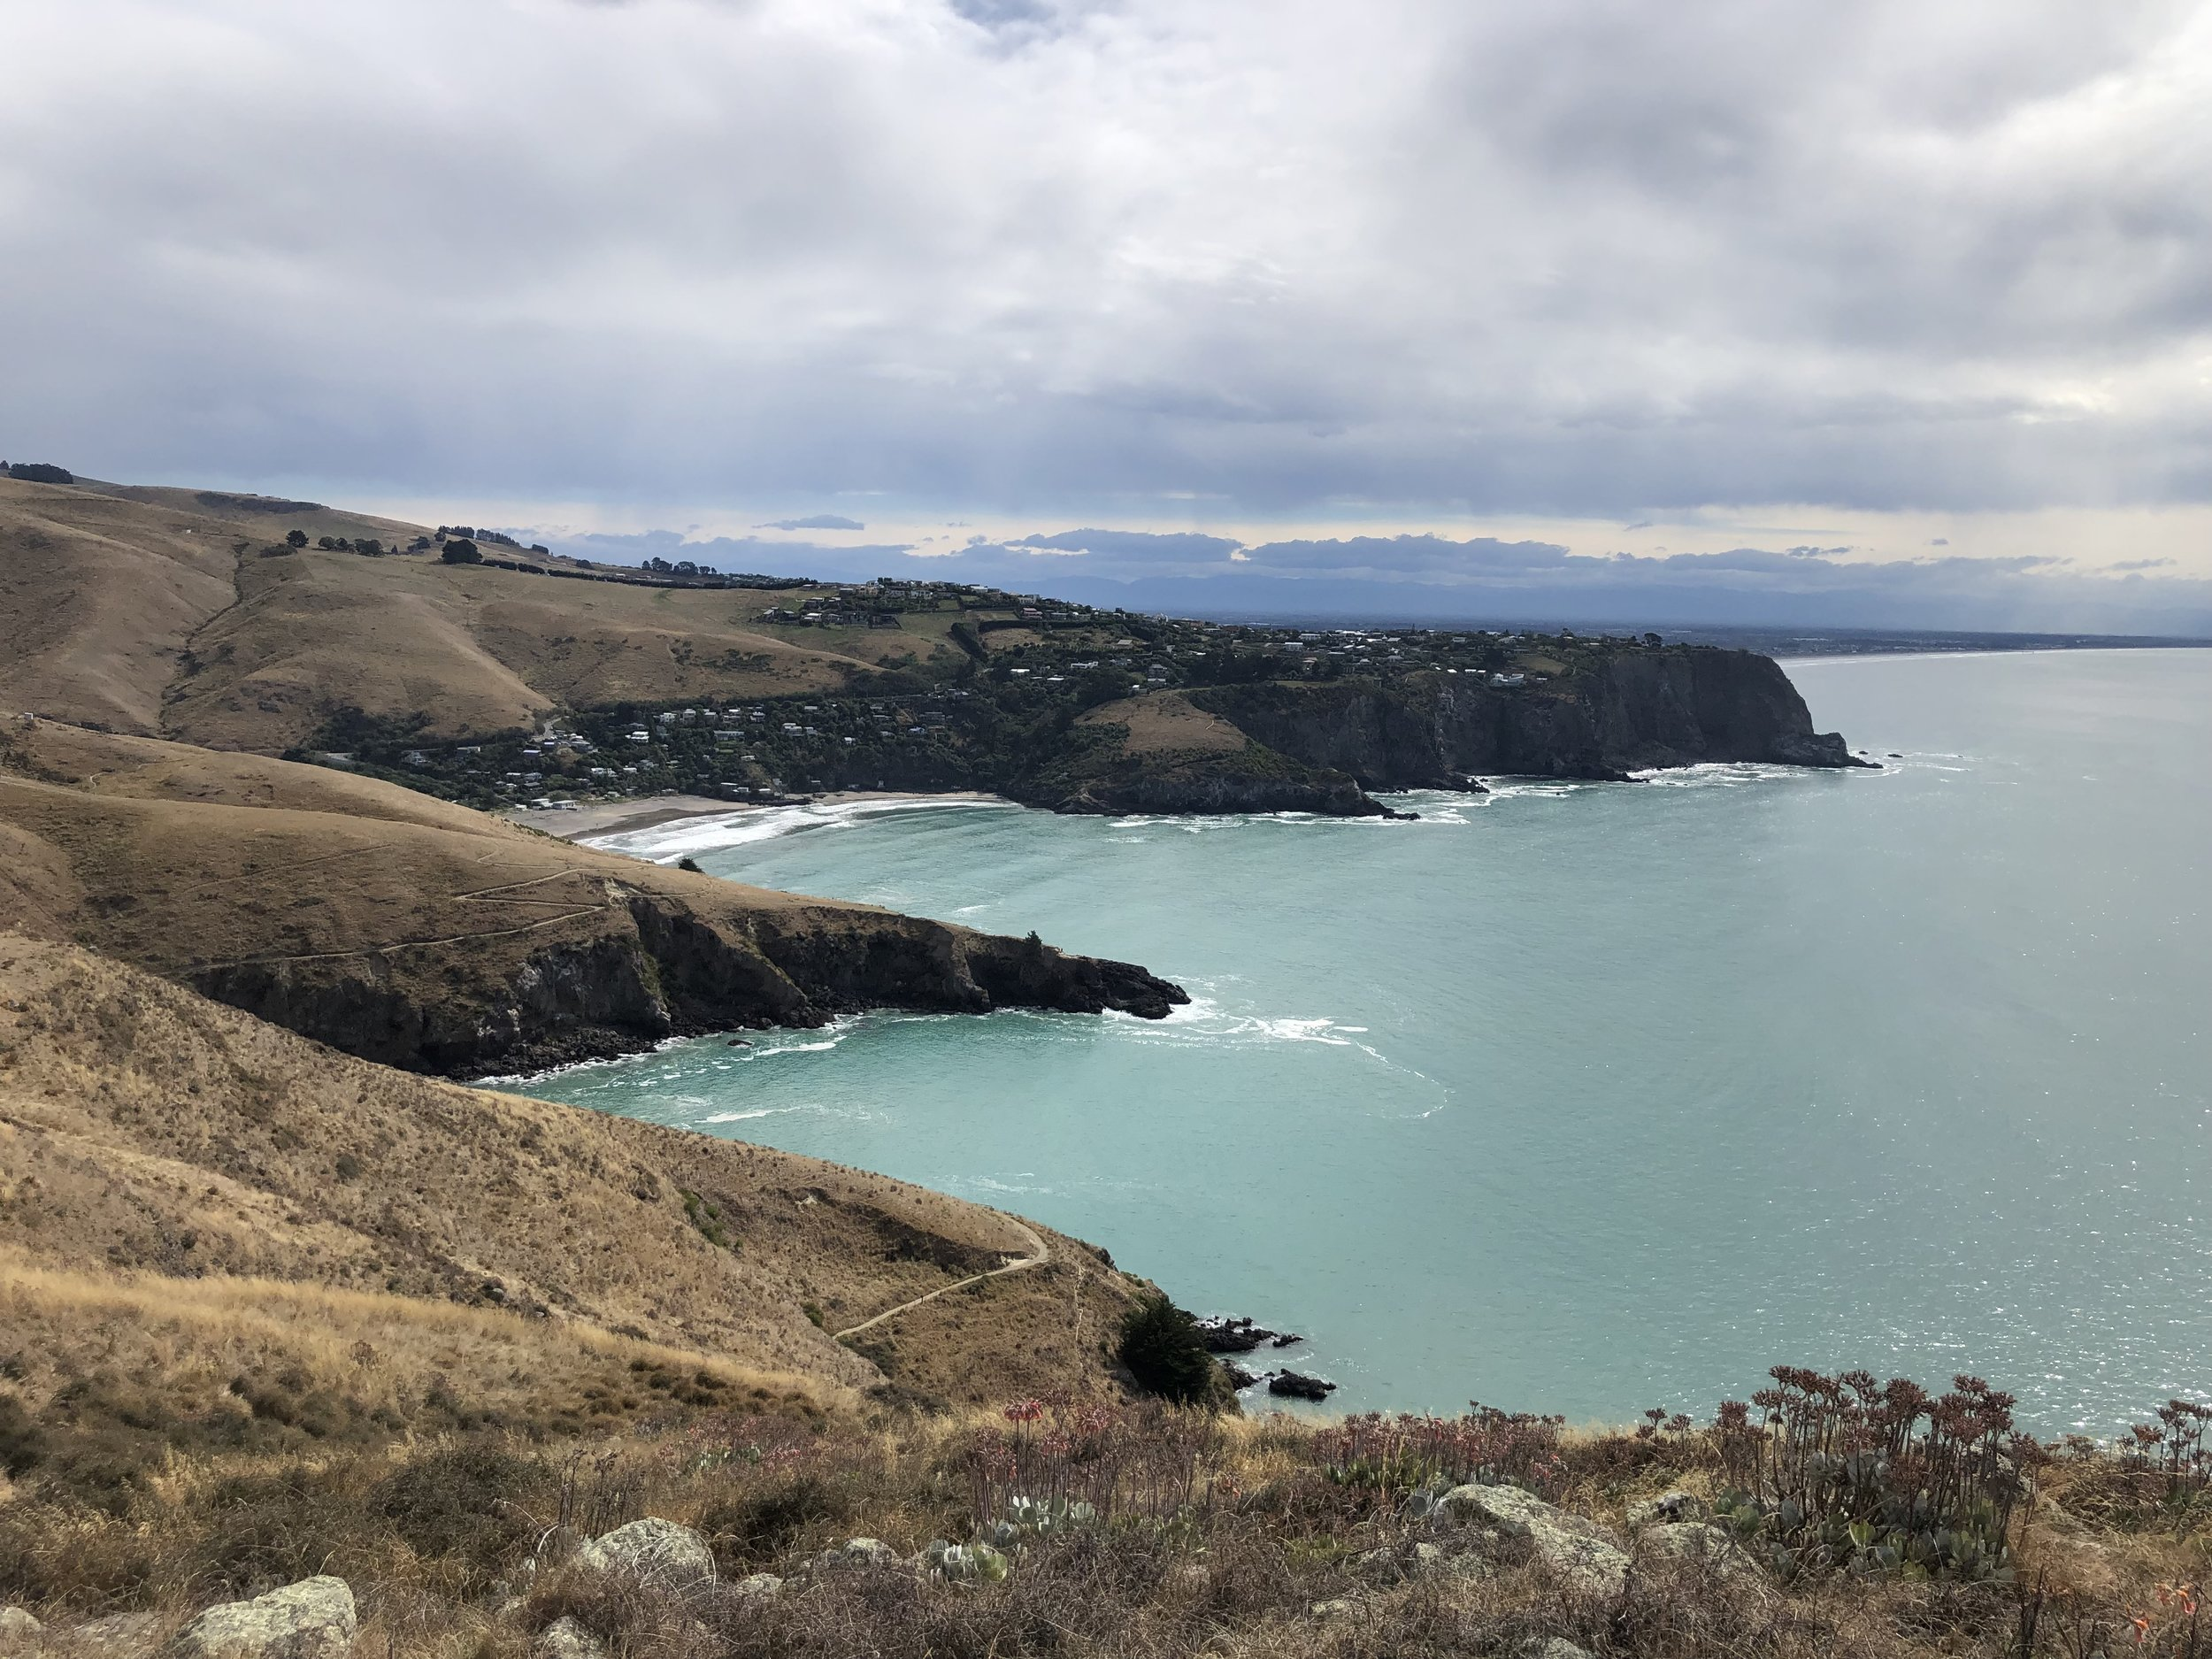 View to Taylor's Mistake beach from Annaconda MTBike track photo by Sunstone